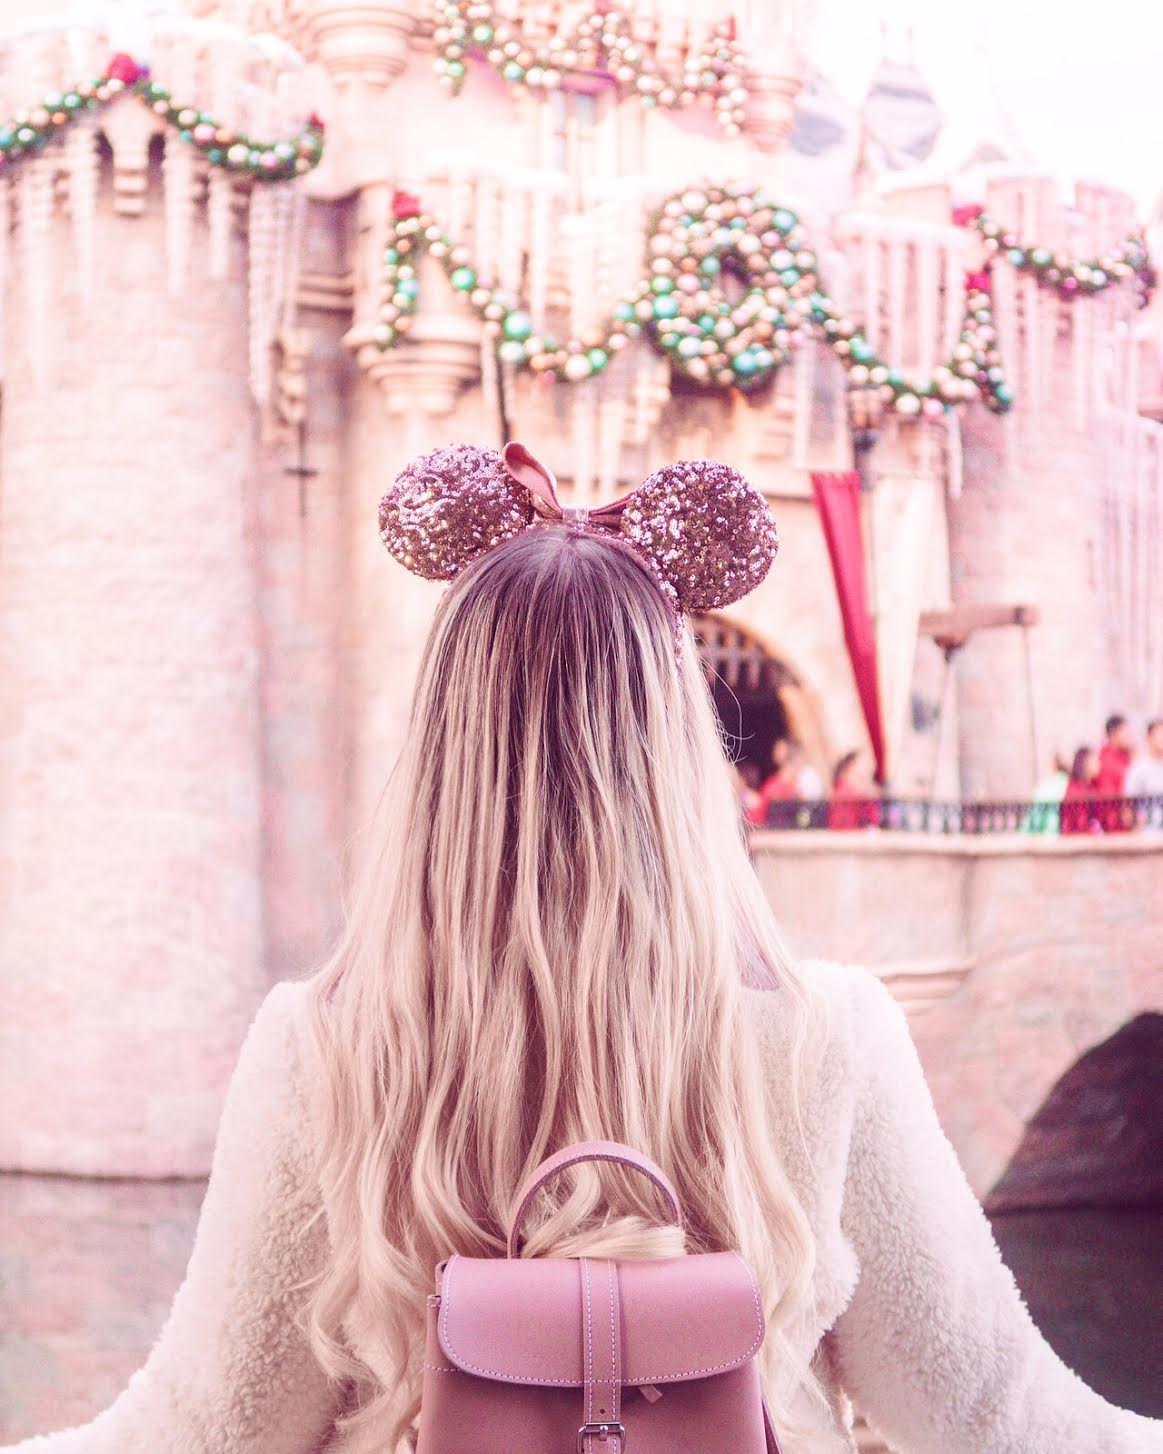 Ultimate Travel Guide: My Best Disneyland Tips